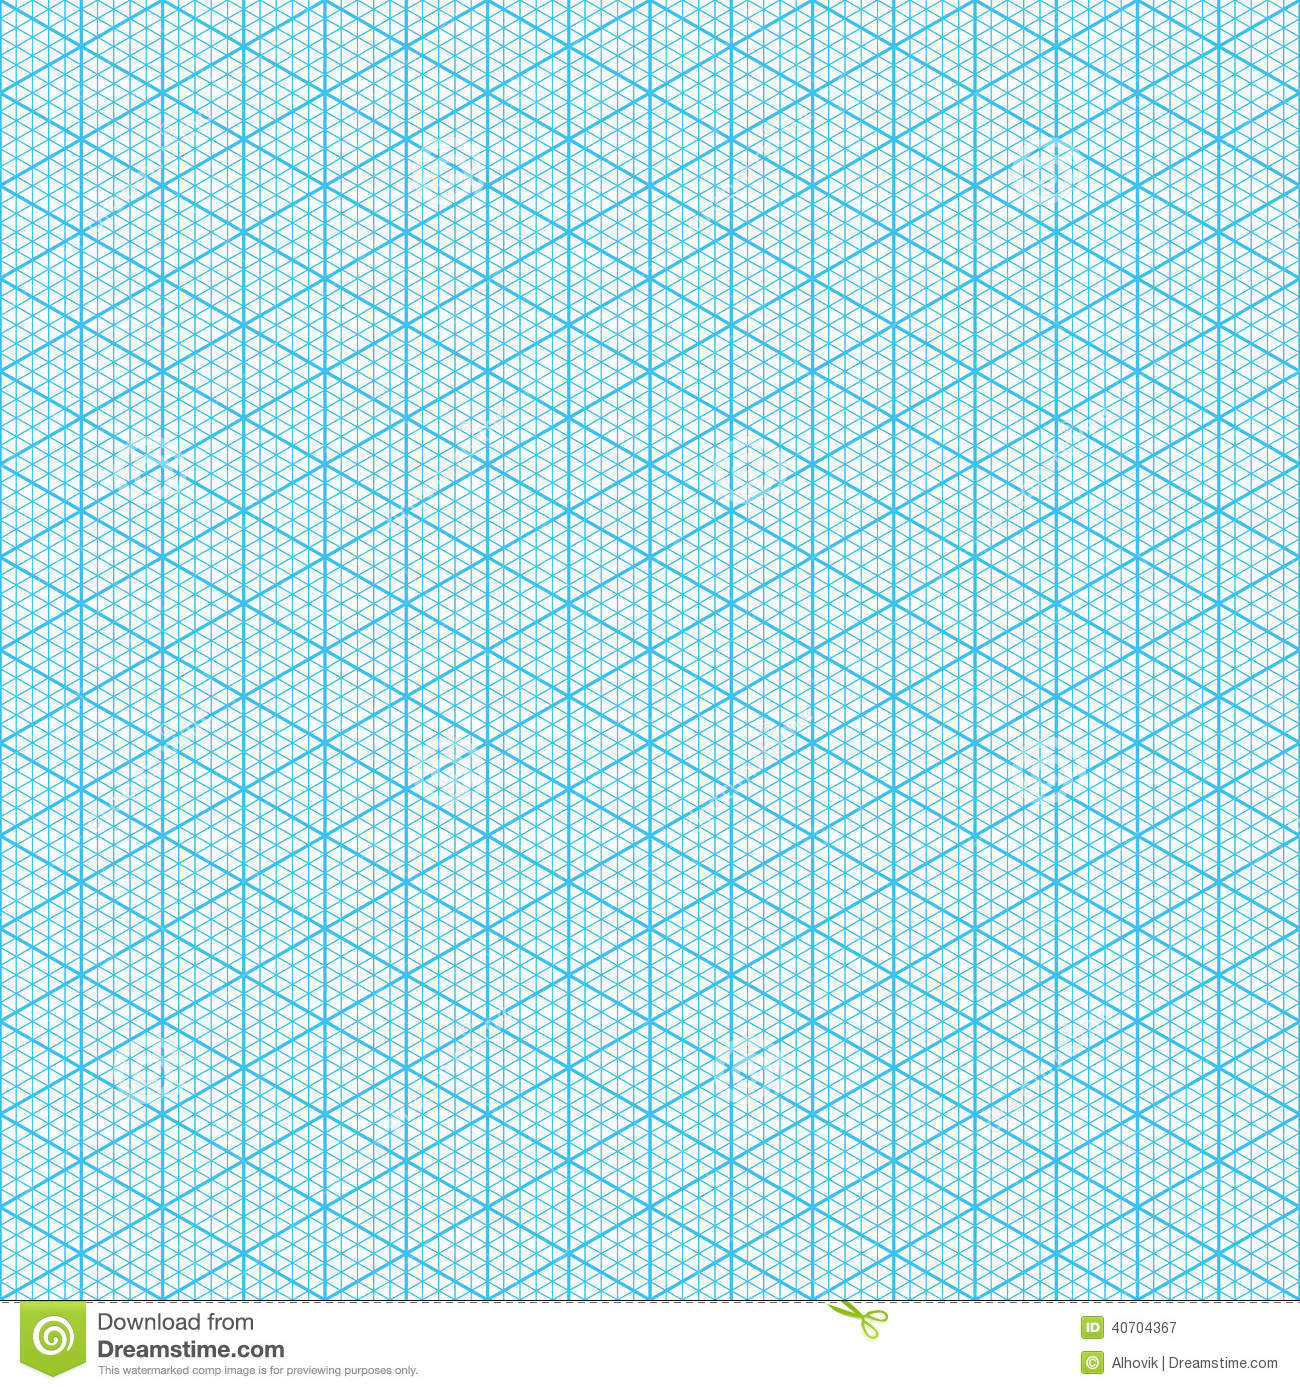 Isometric Graph Paper Stock Vector - Image: 40704367